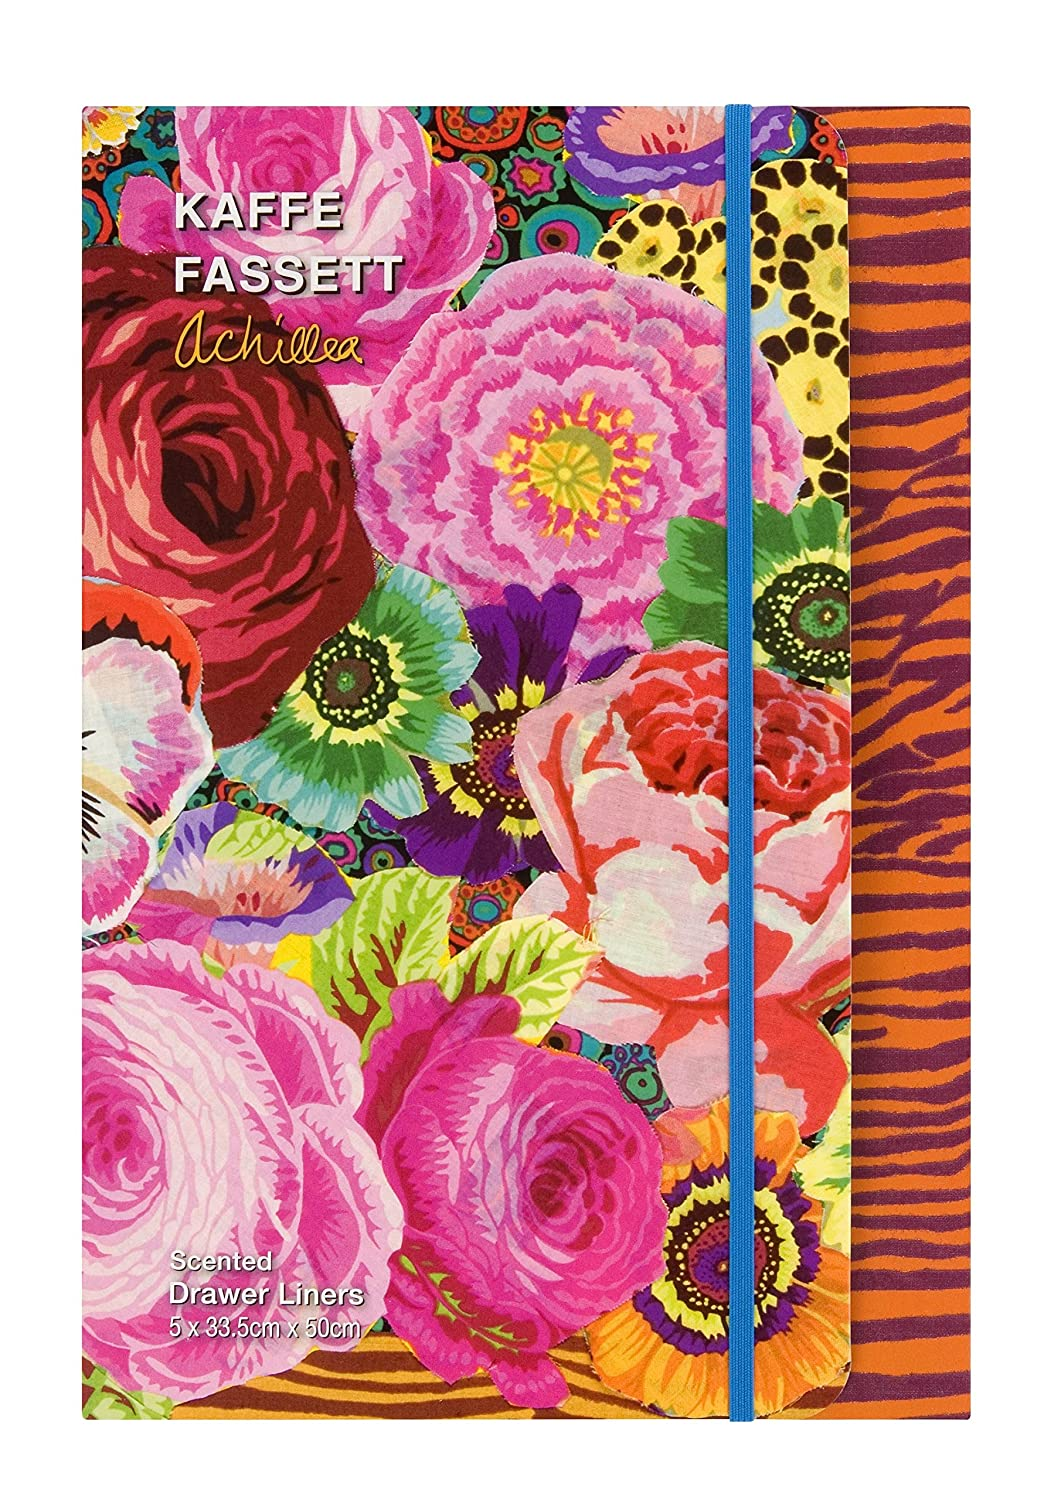 Kaffe Fassett Scented Drawer Liners, Multi-Colour by Kaffe Fassett FG2940